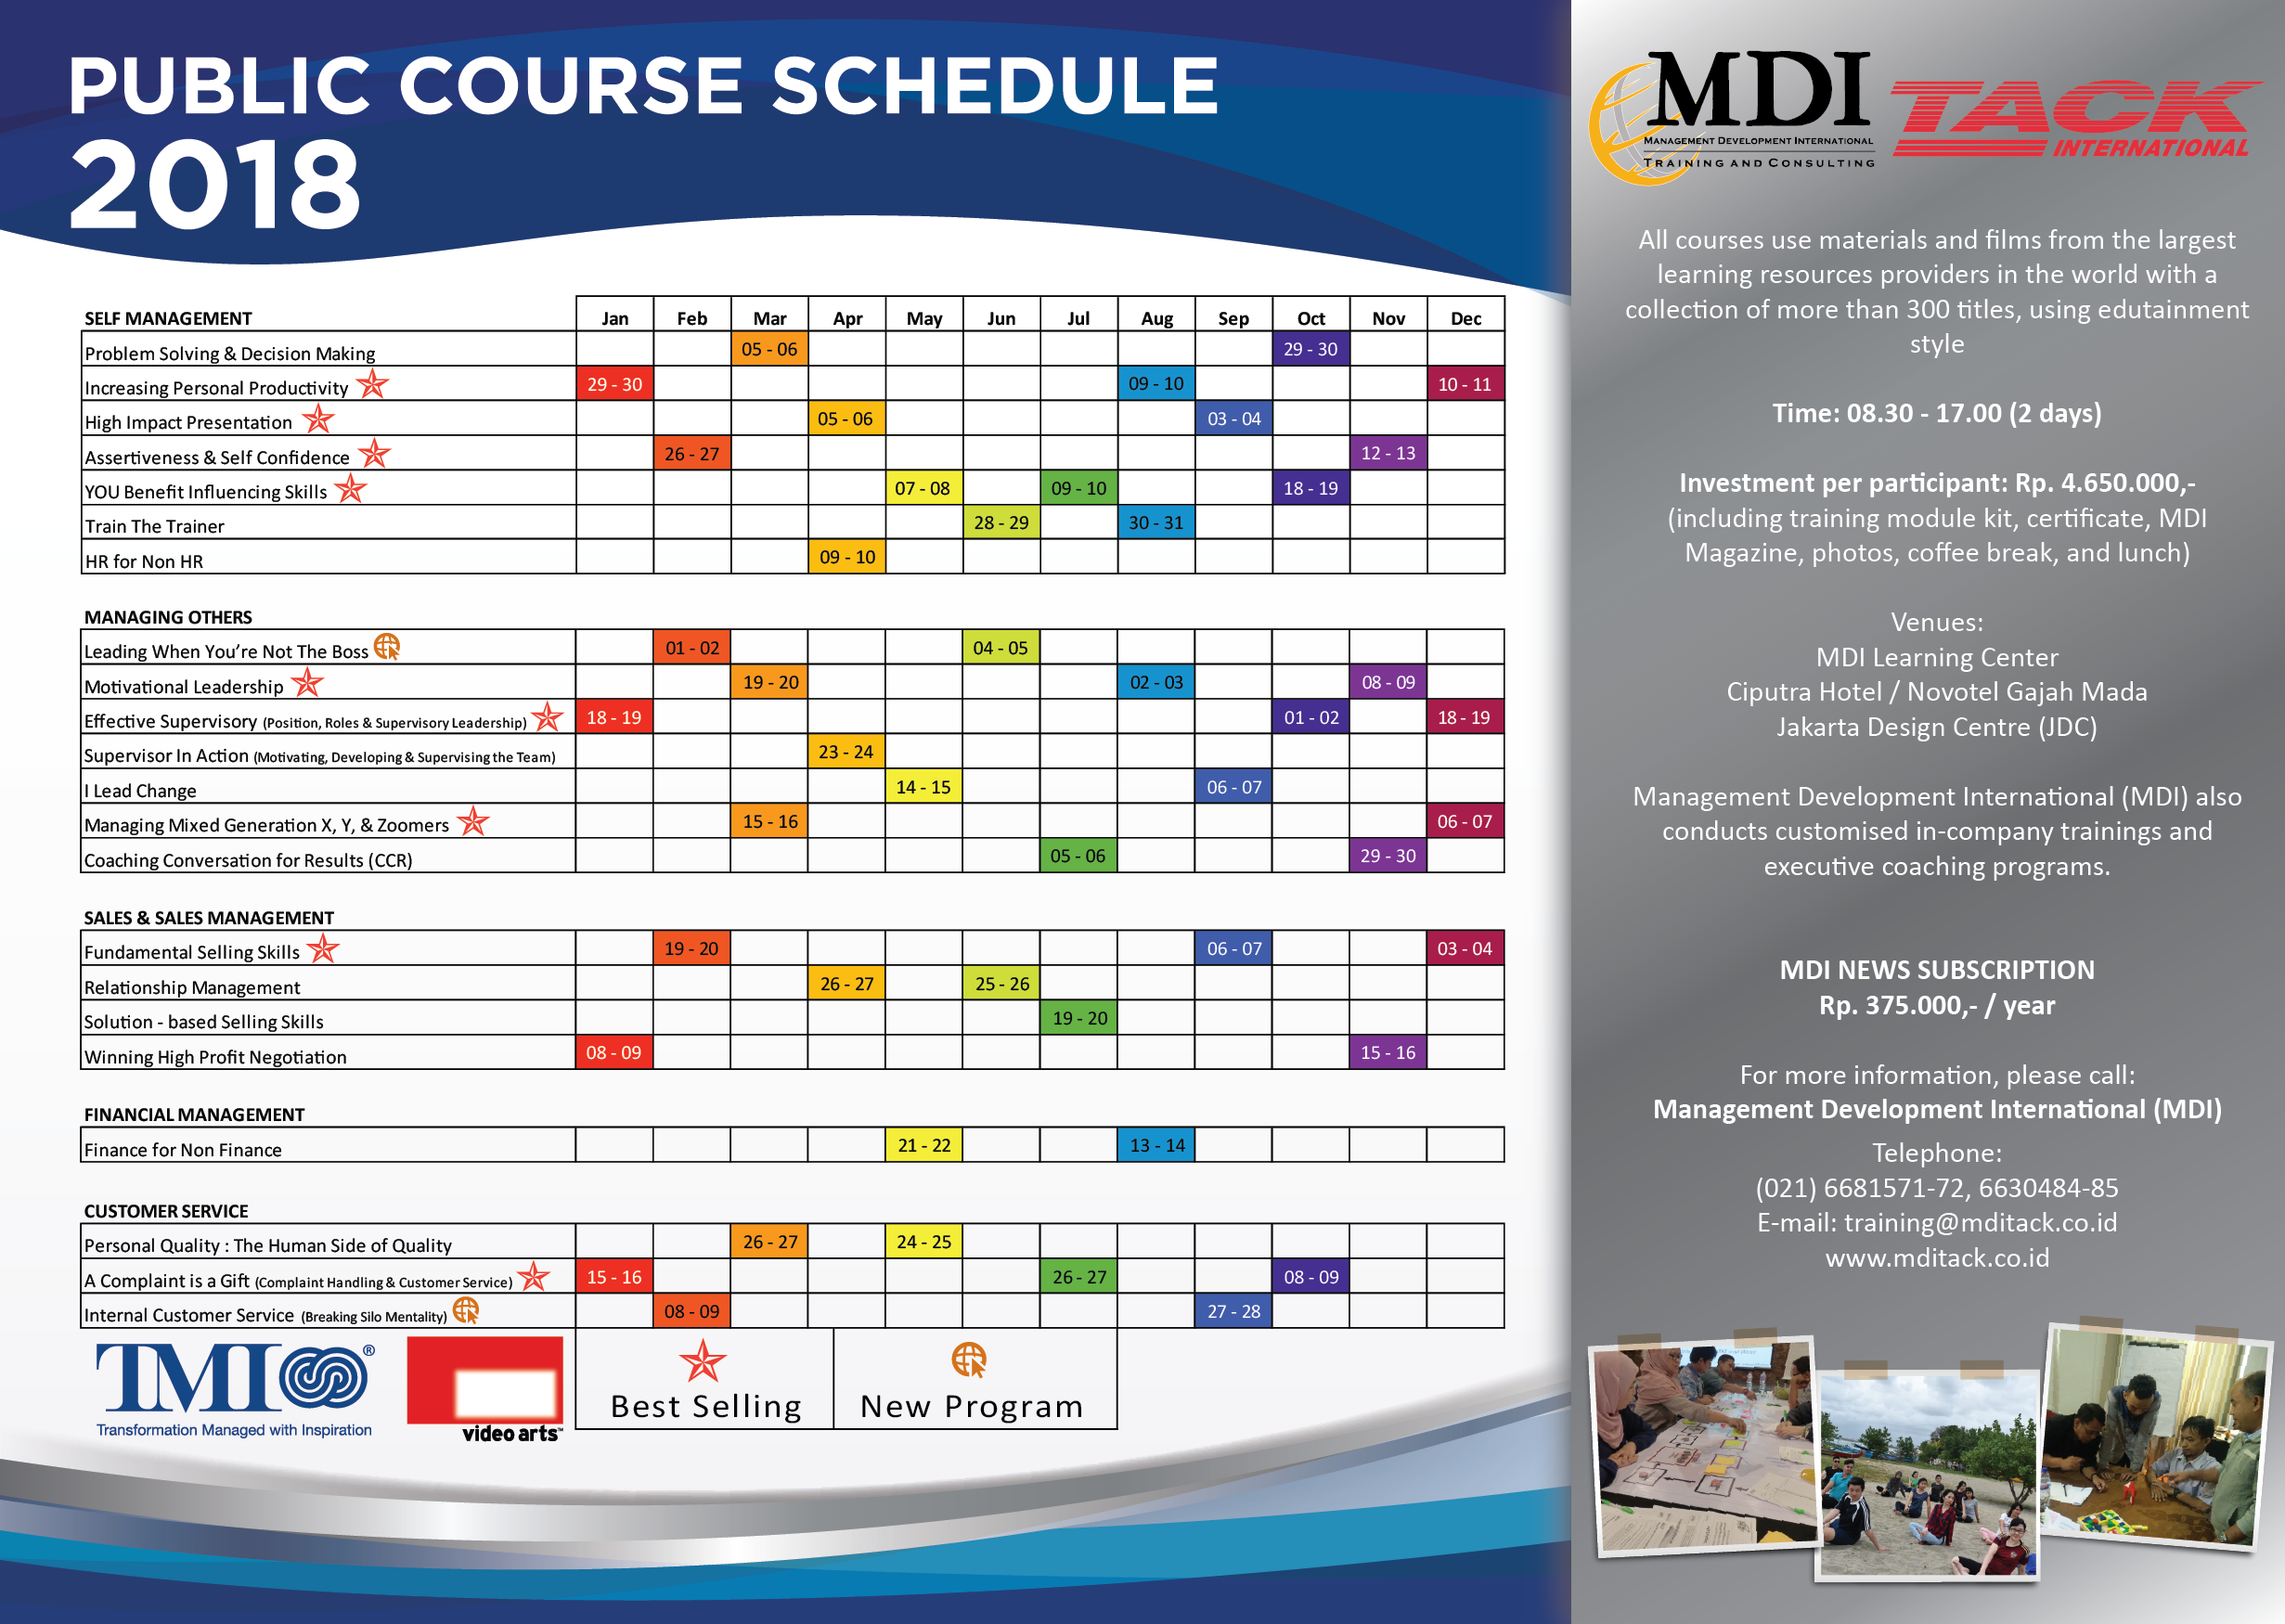 Jadwal Training 2018